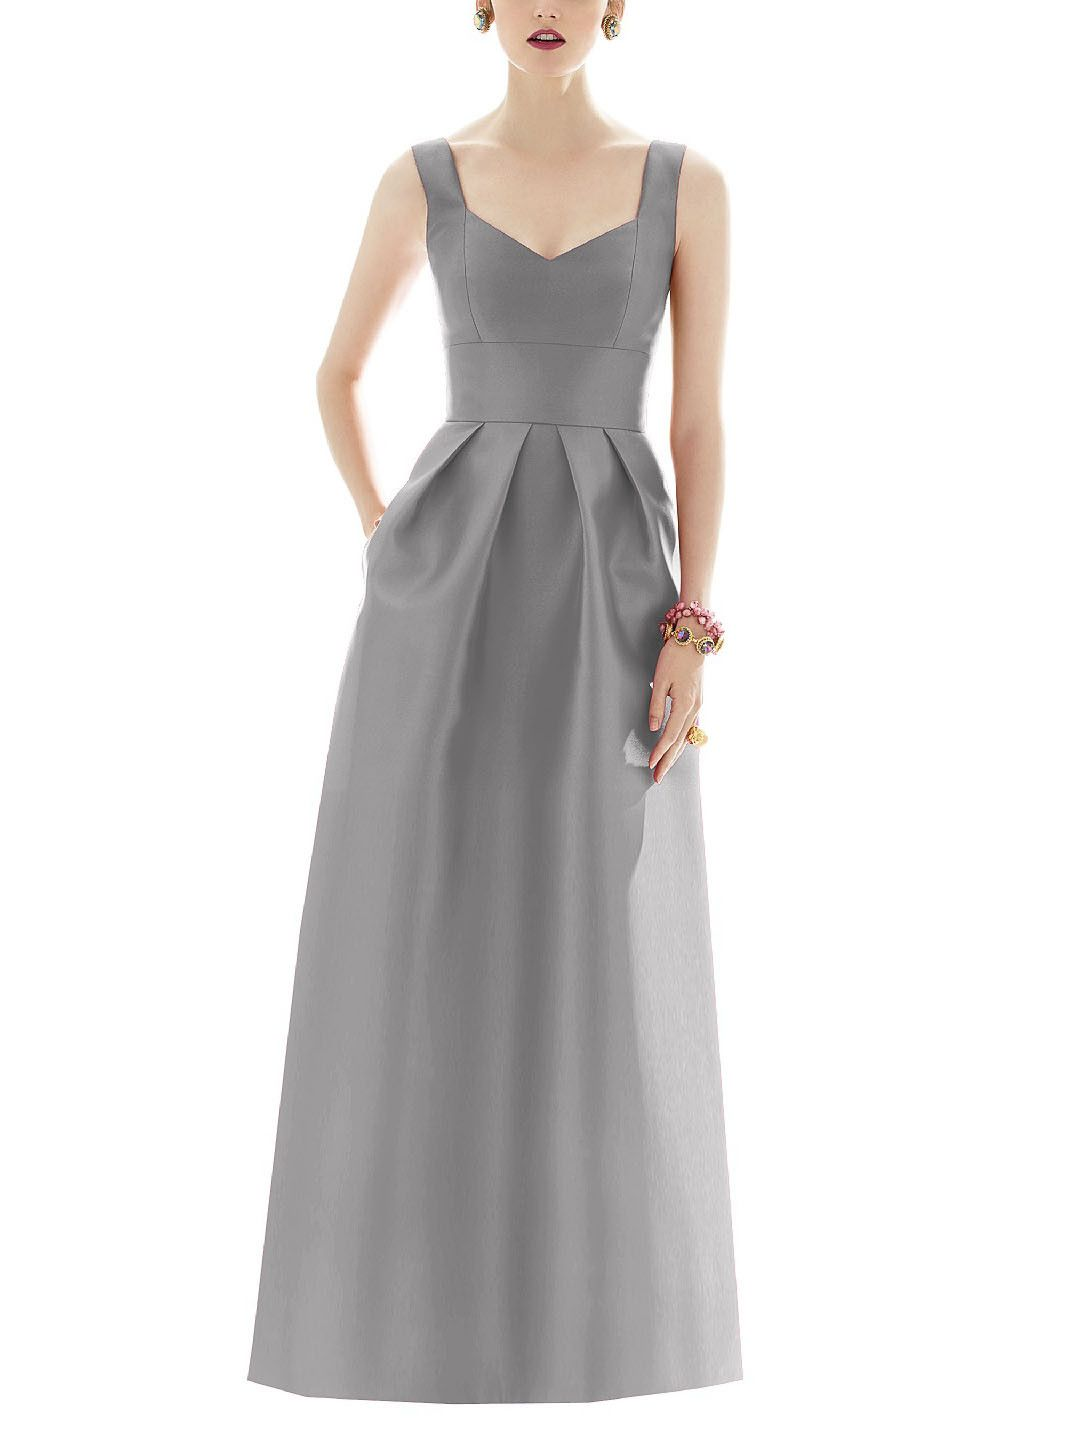 Alfred sung style d659 alfred sung alfred sung bridesmaid alfred sung style d659 ombrellifo Choice Image